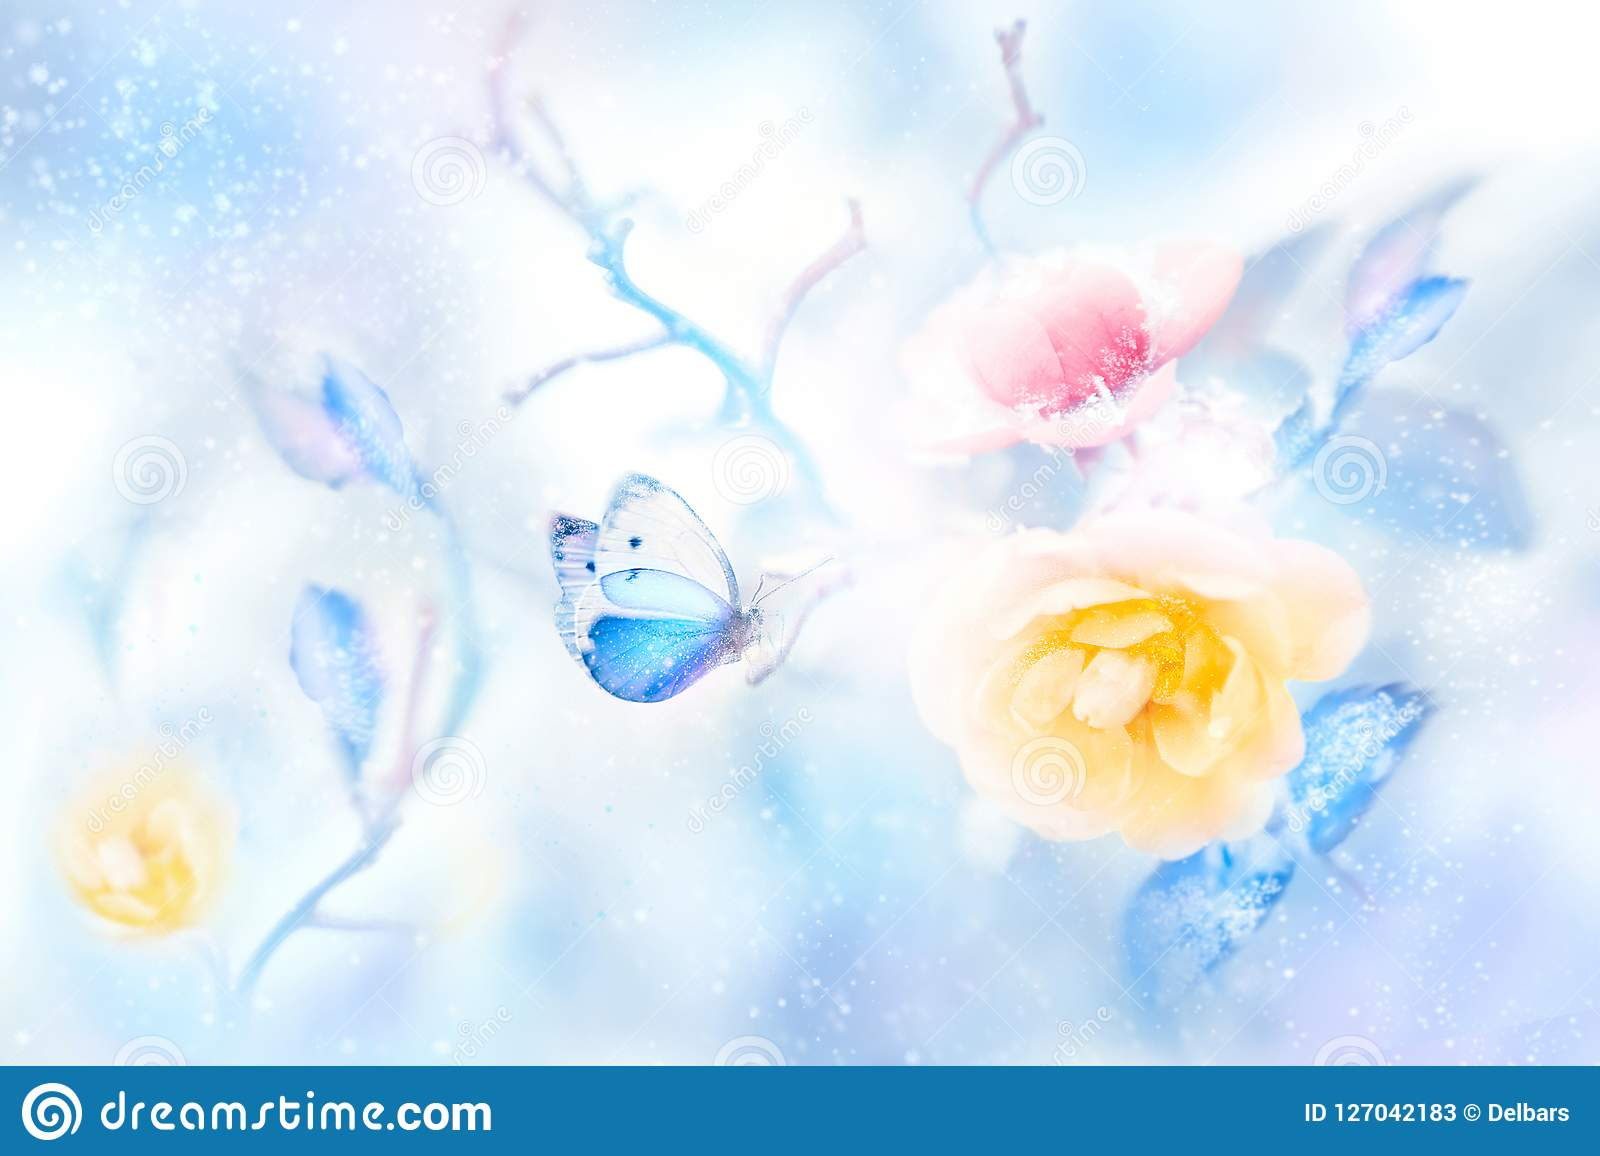 Beautiful yellow and pink roses and blue butterfly in the snow and frost. Artistic colorful winter natural image.